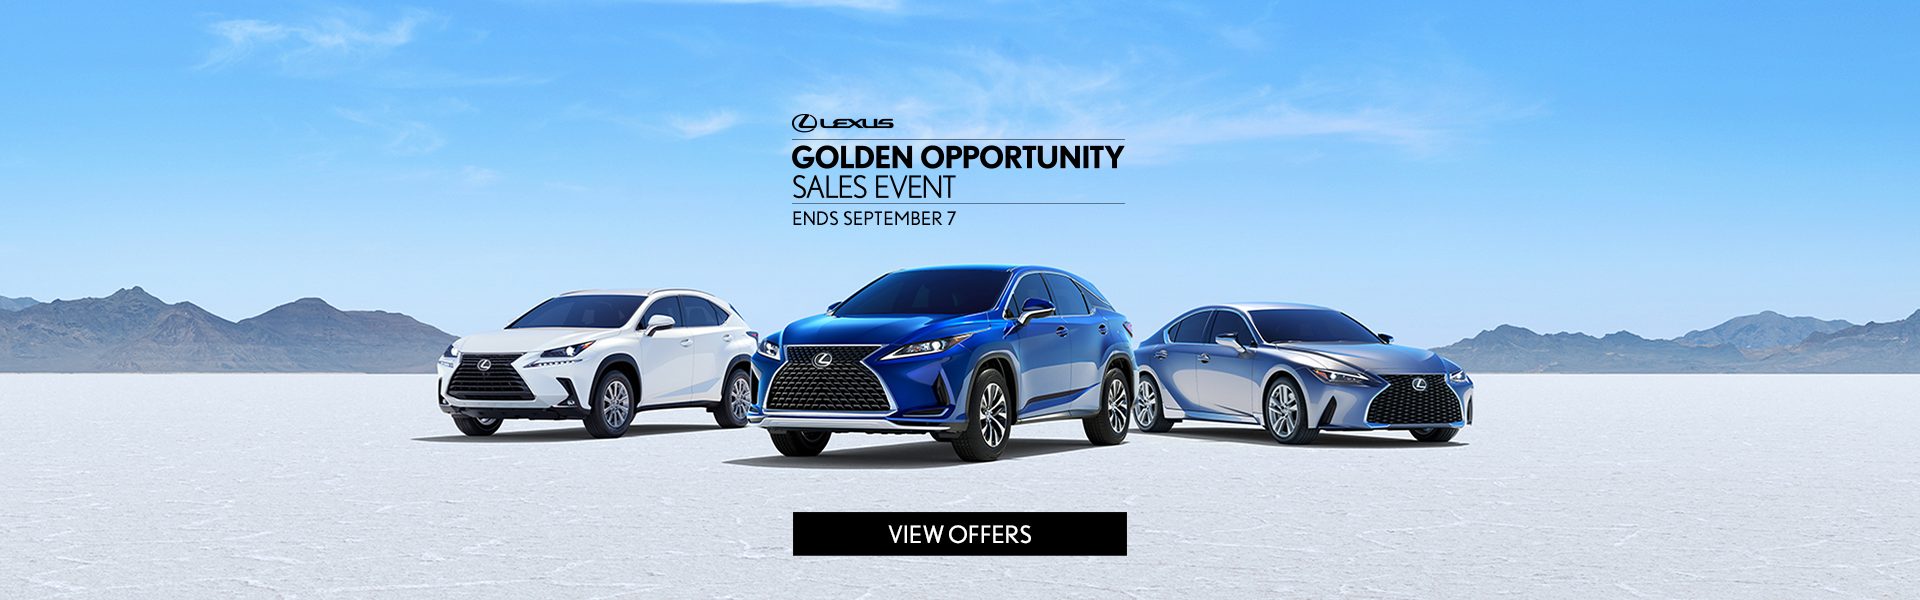 Golden Opportunity Sales Event